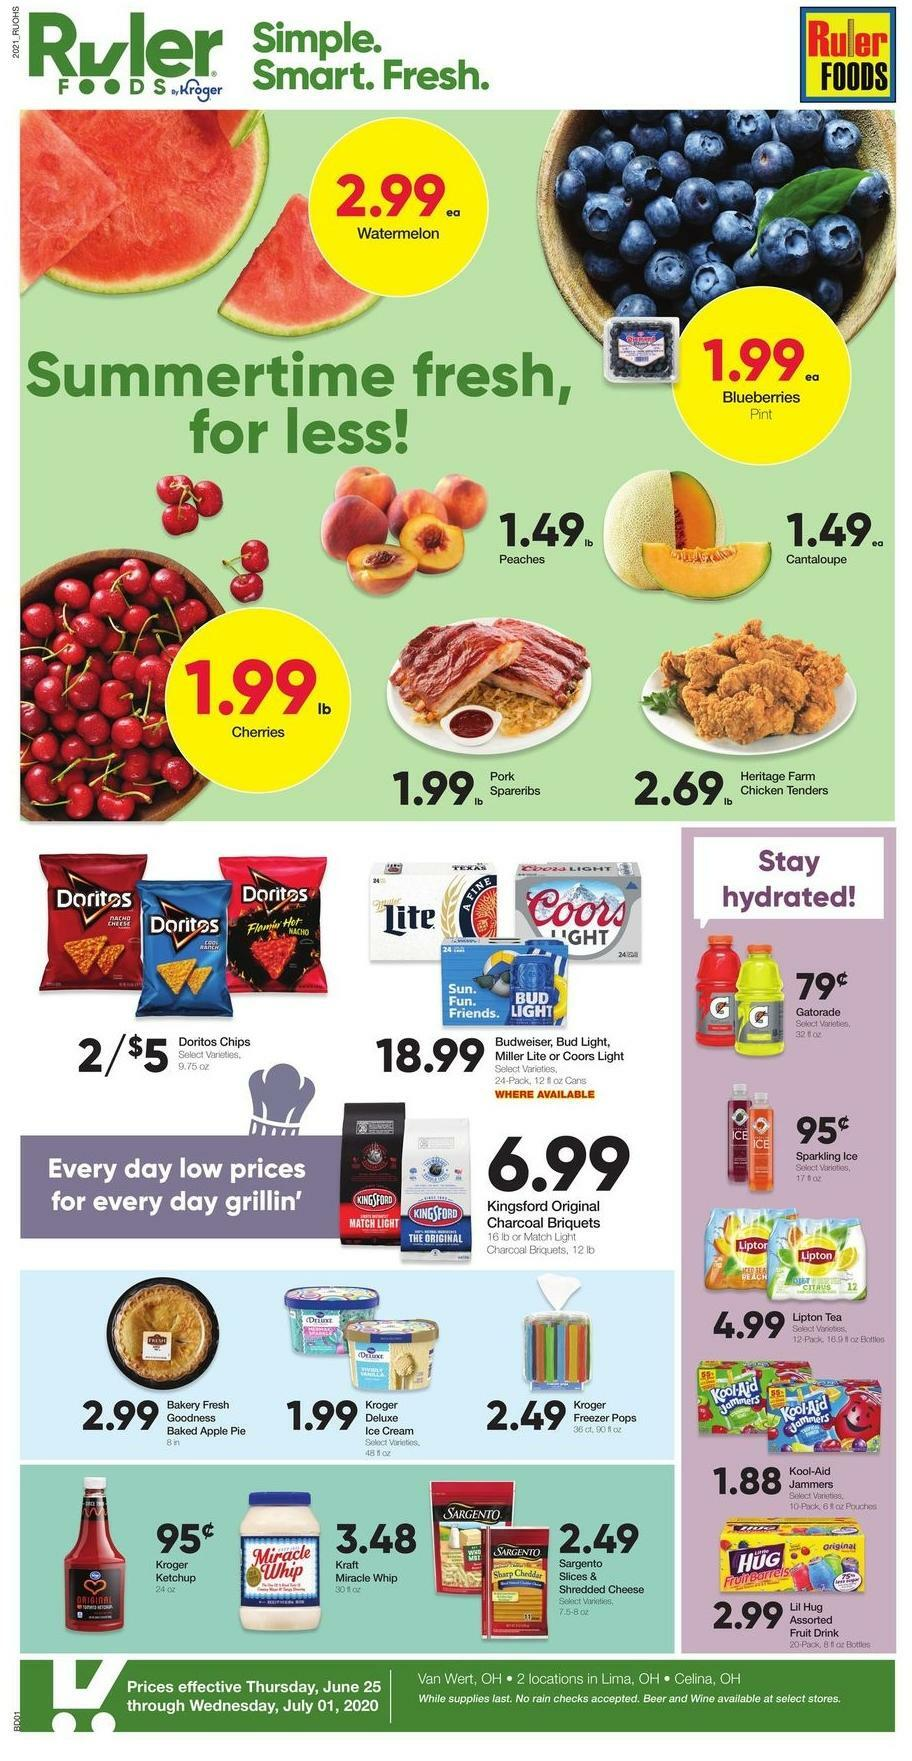 Ruler Foods Weekly Ad from June 25